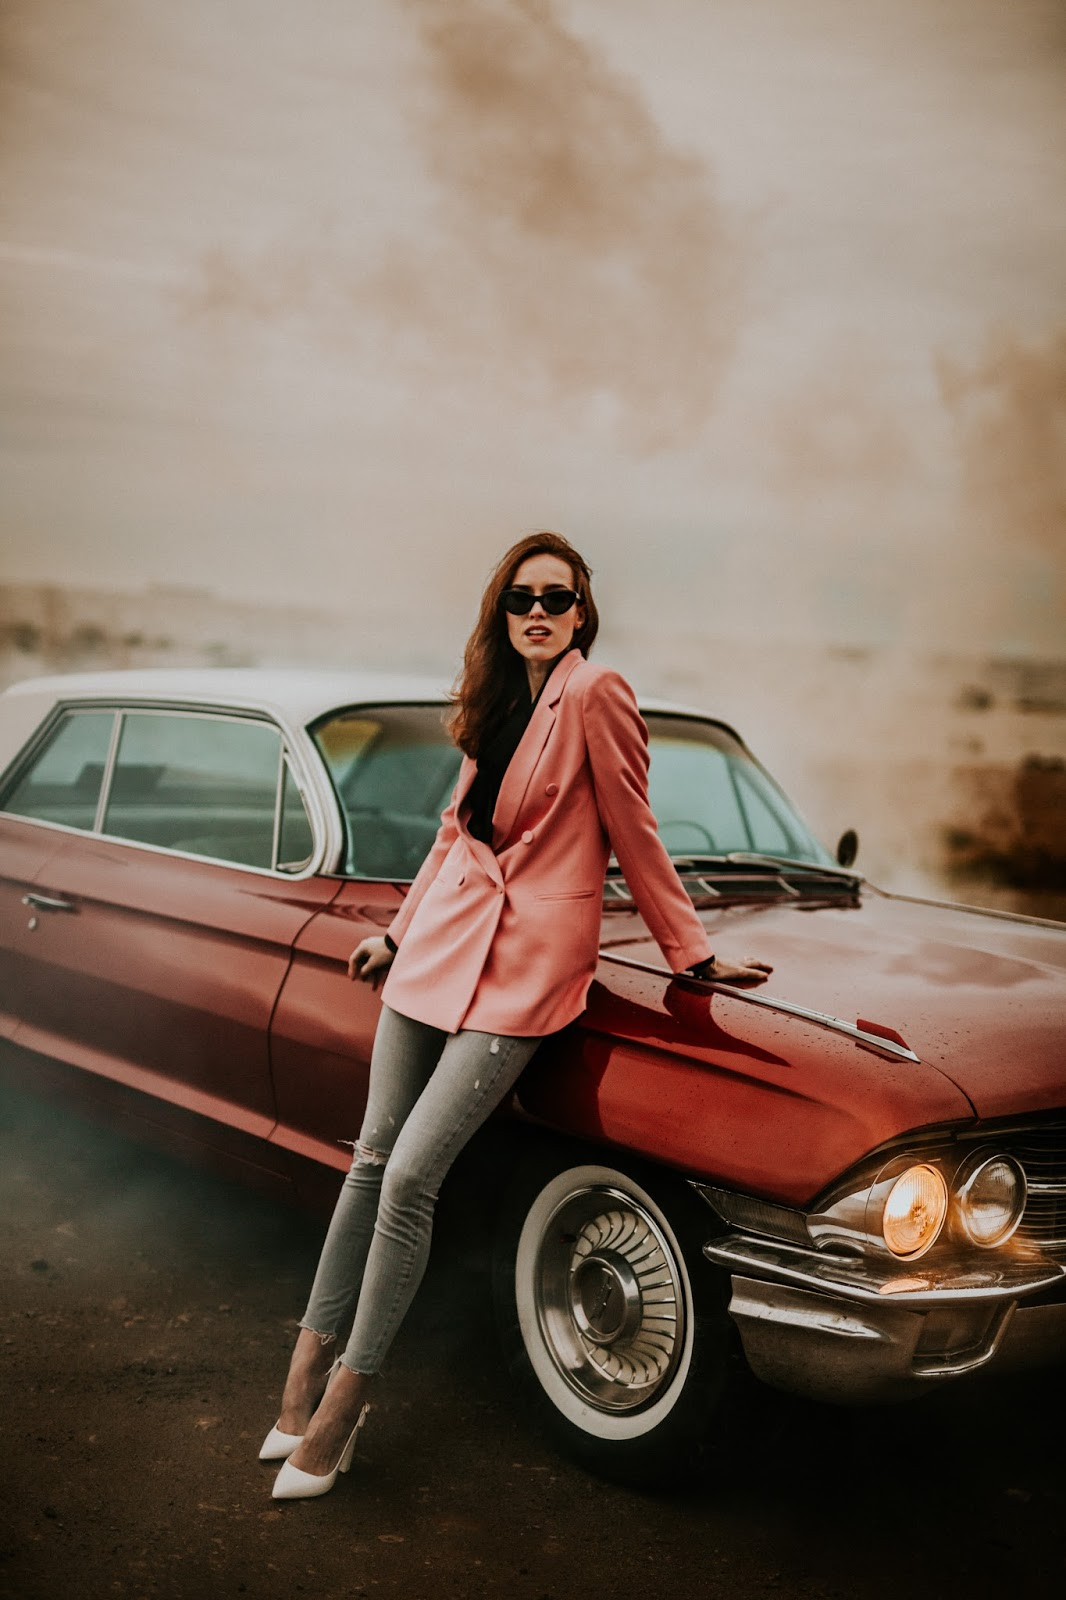 pink blazer girl red cadillac car photography